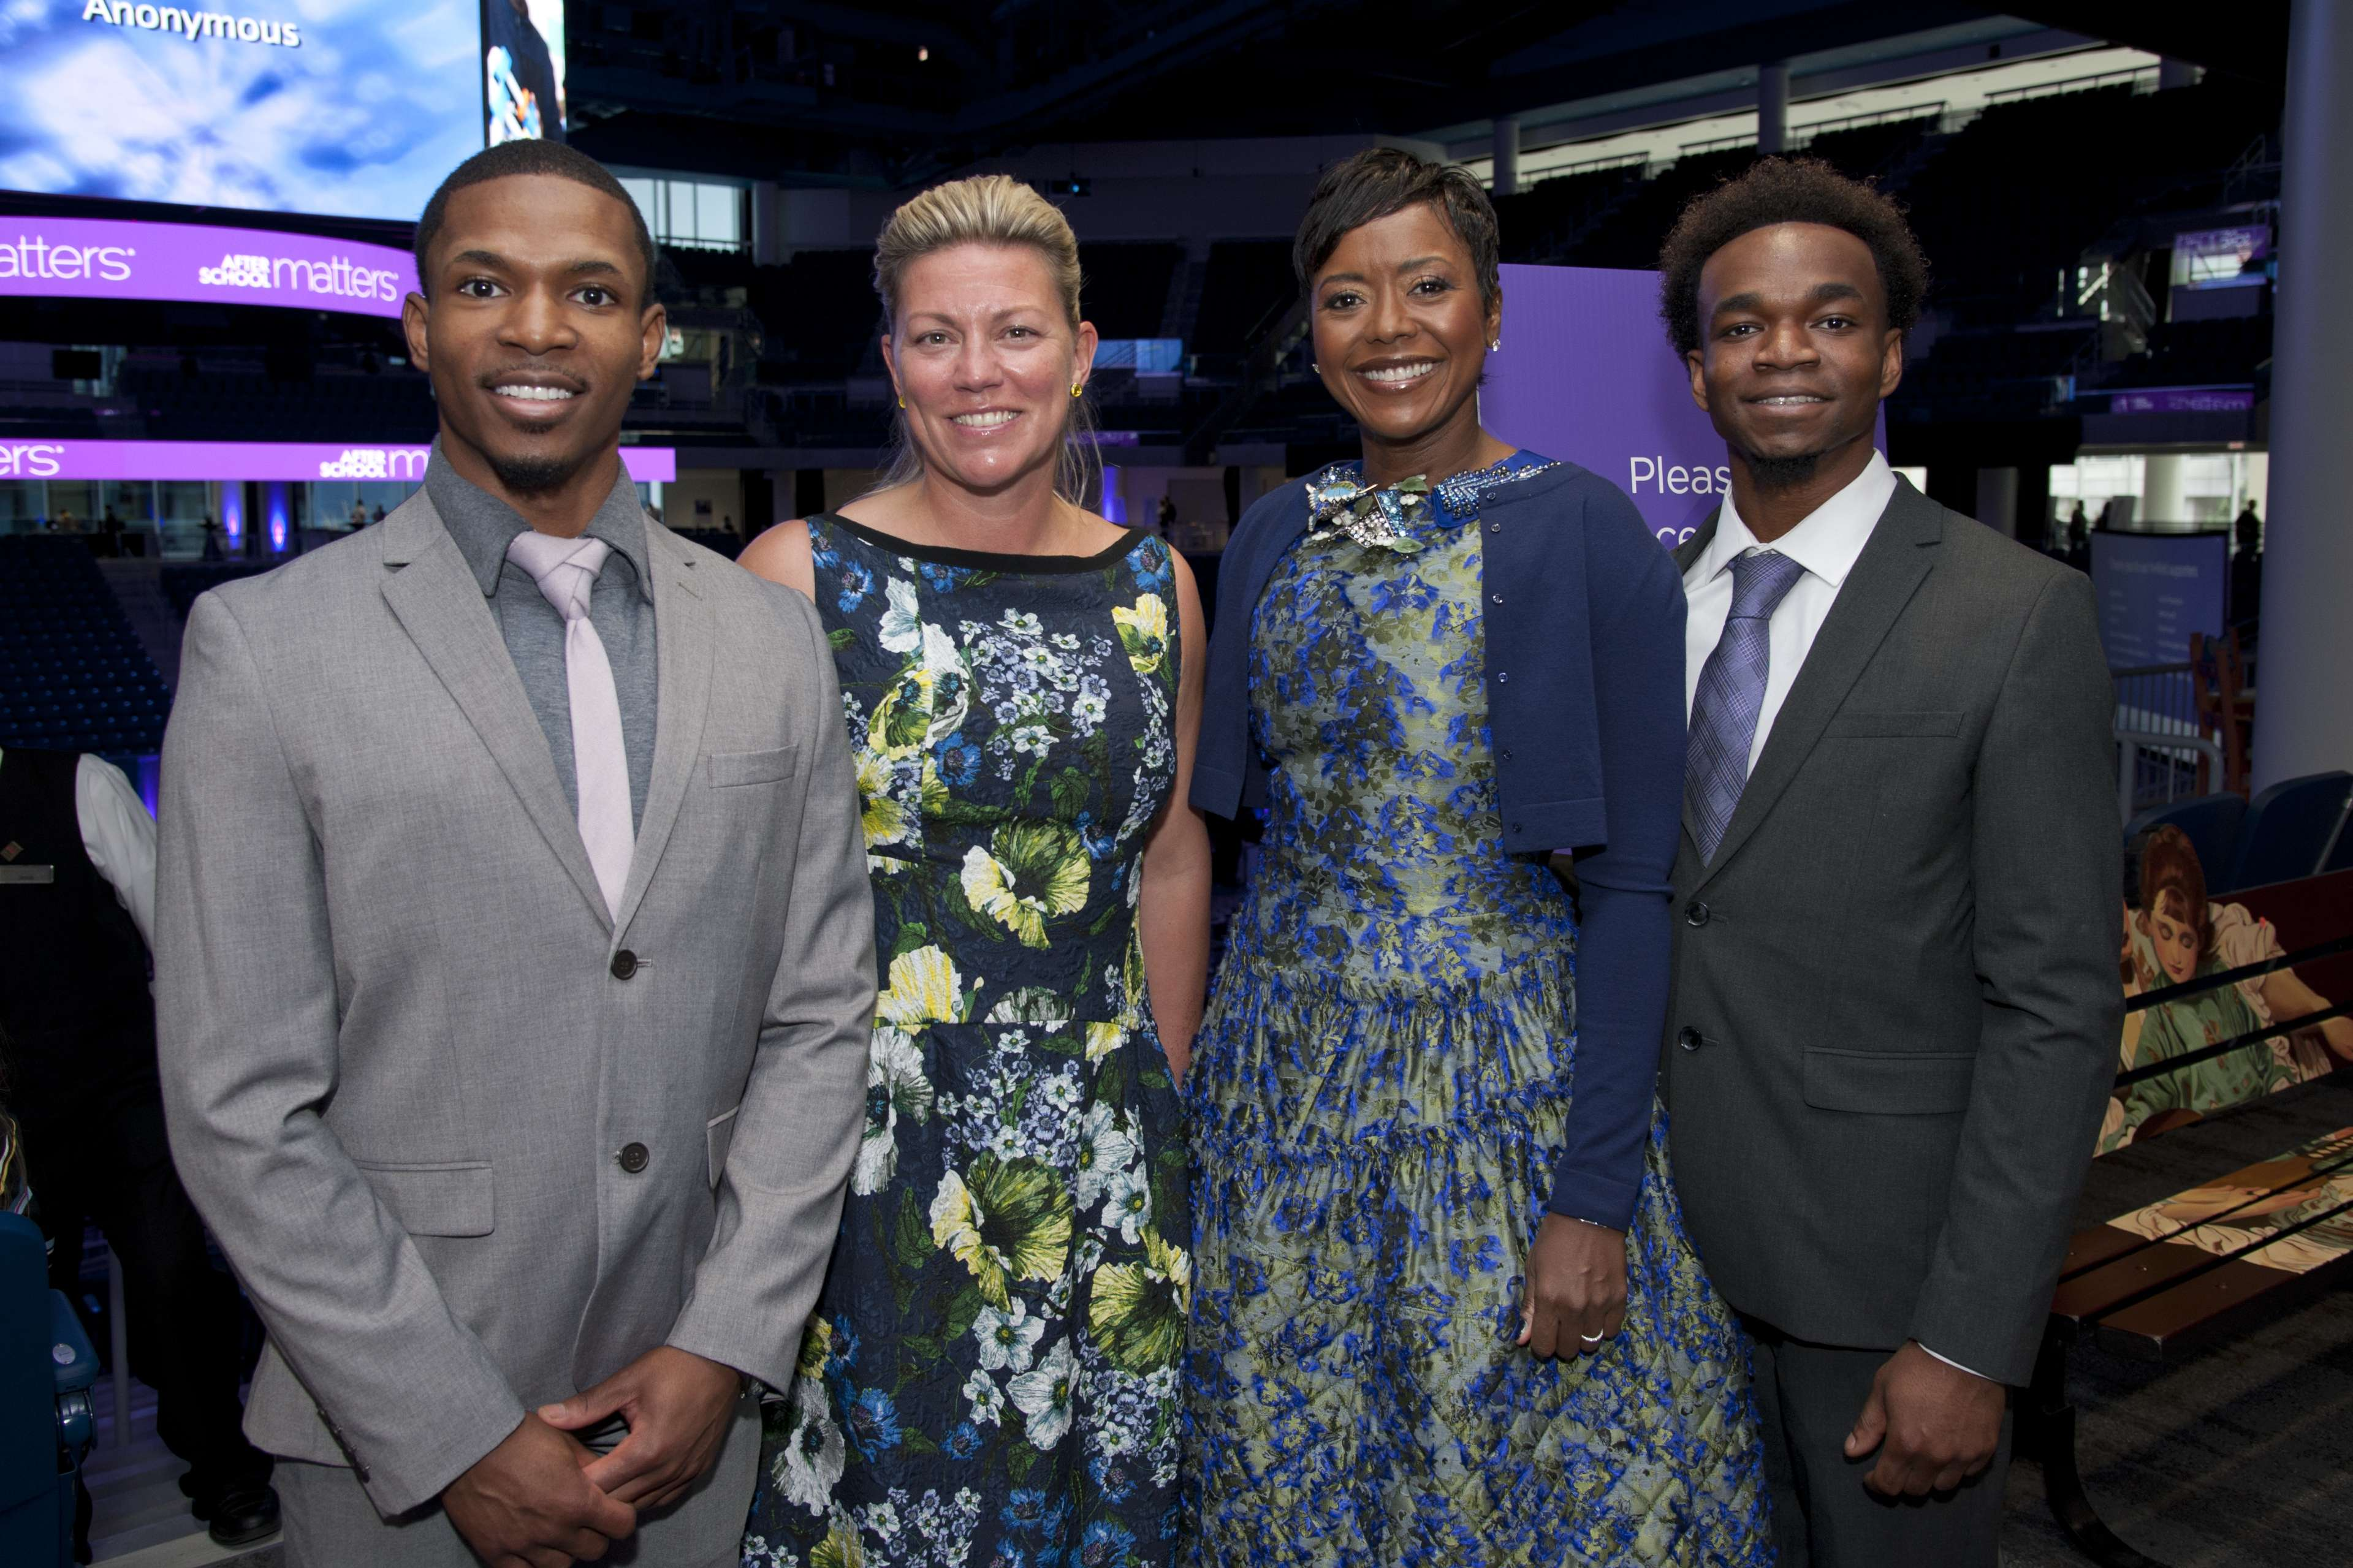 <p>After School Matters Board Chair Mellody Hobson (center right) and Board Secretary Nora Daley (center left) pose with After School Matters alumni Semaj Thomas, pastry chef at NoMi (left) and Darrius Thomas (right), student at Chicago's French Pastry School during the gallery hour of After School Matters Annual Gala on September 18, 2017. Photo credit: Robert Carl</p>